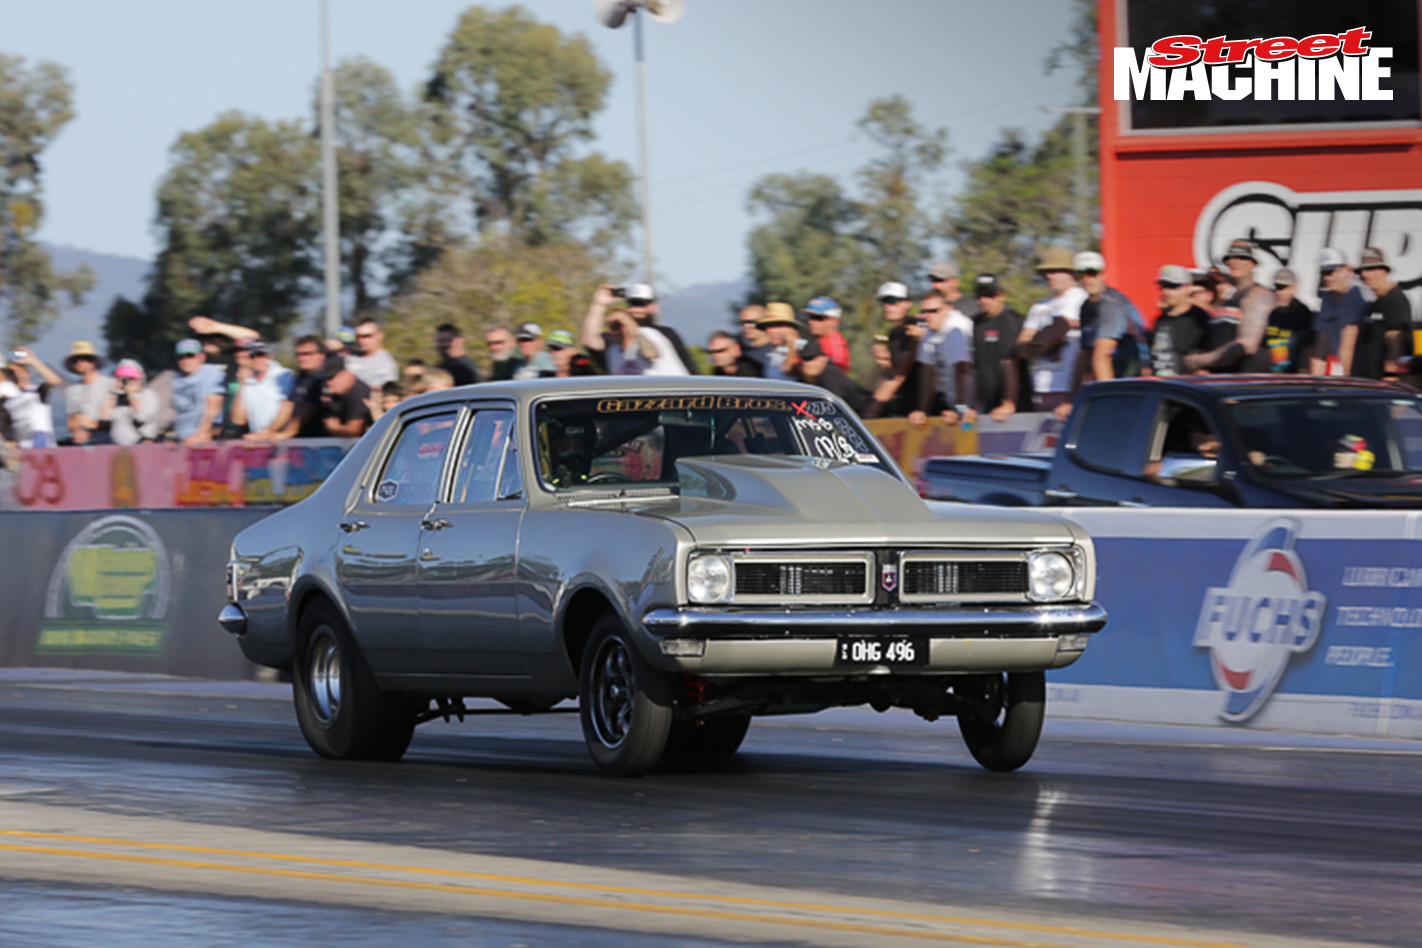 HG Holden Drag 3082 Nw